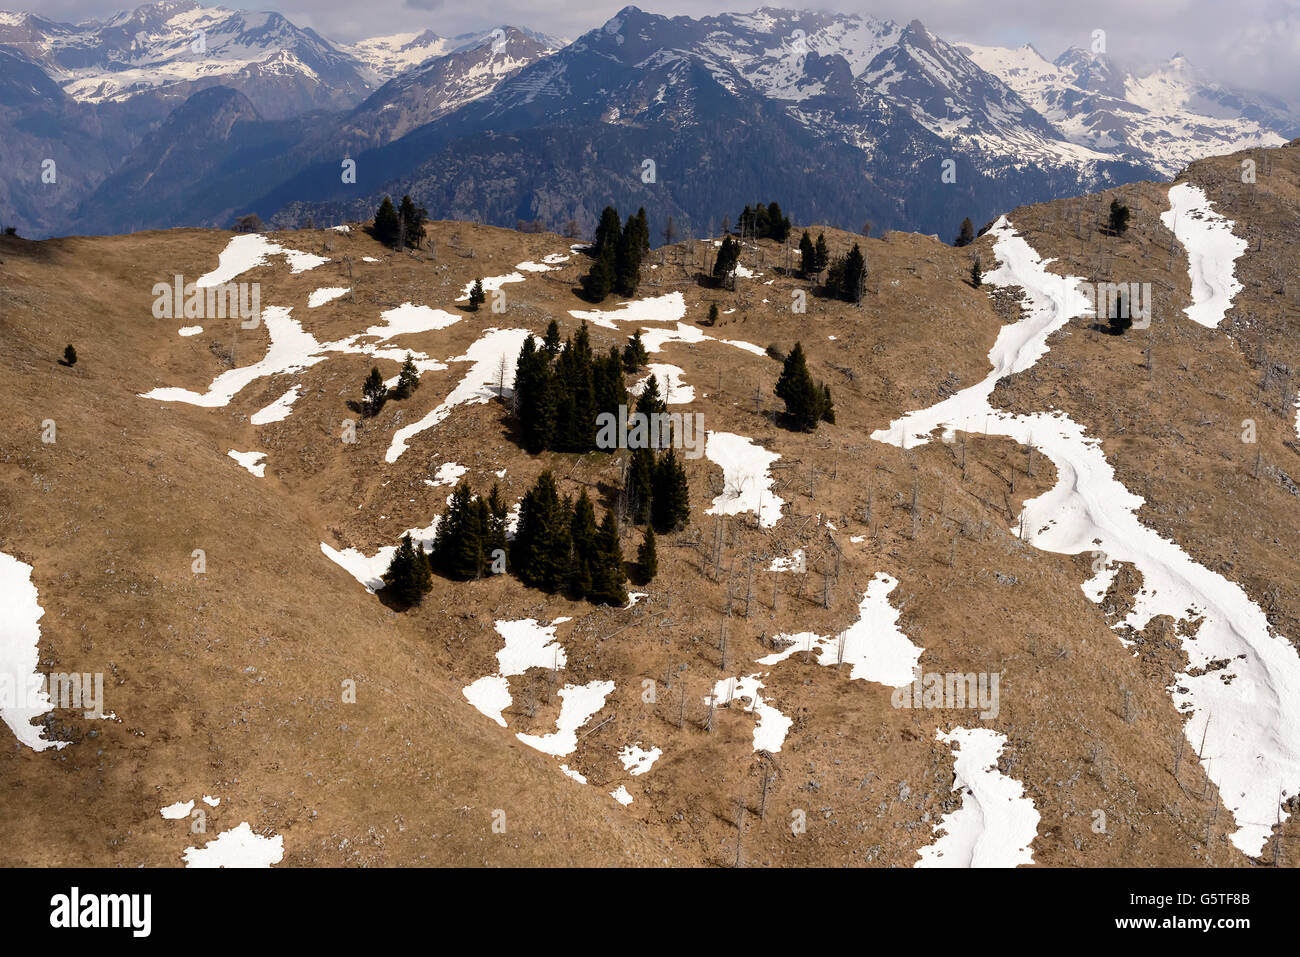 remains of snow among firs on slope, Orobie, - Stock Image